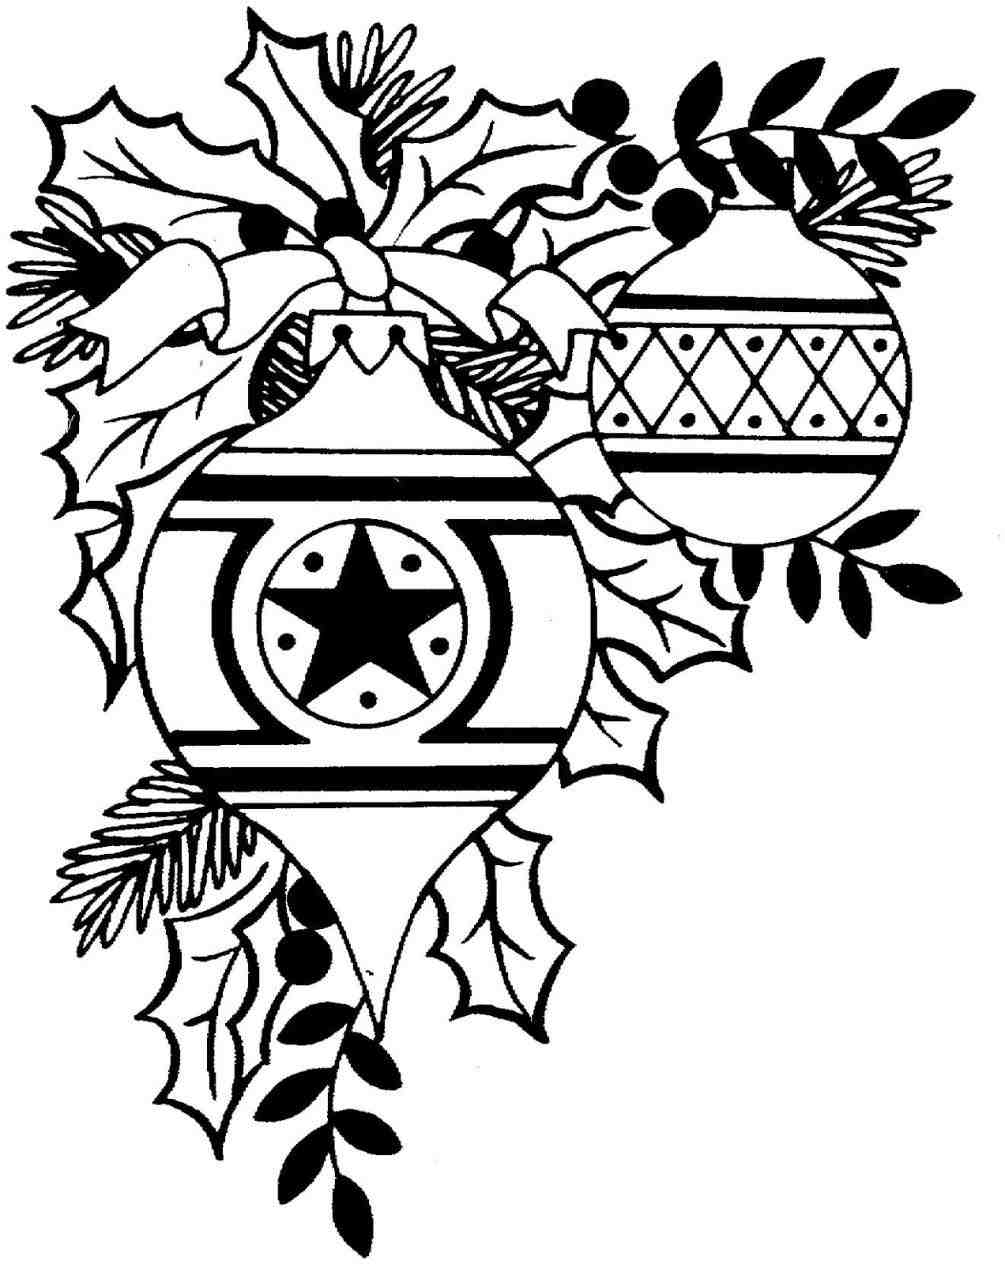 1005x1264 Black And White Christmas Tree Clipart Love The Leaves!